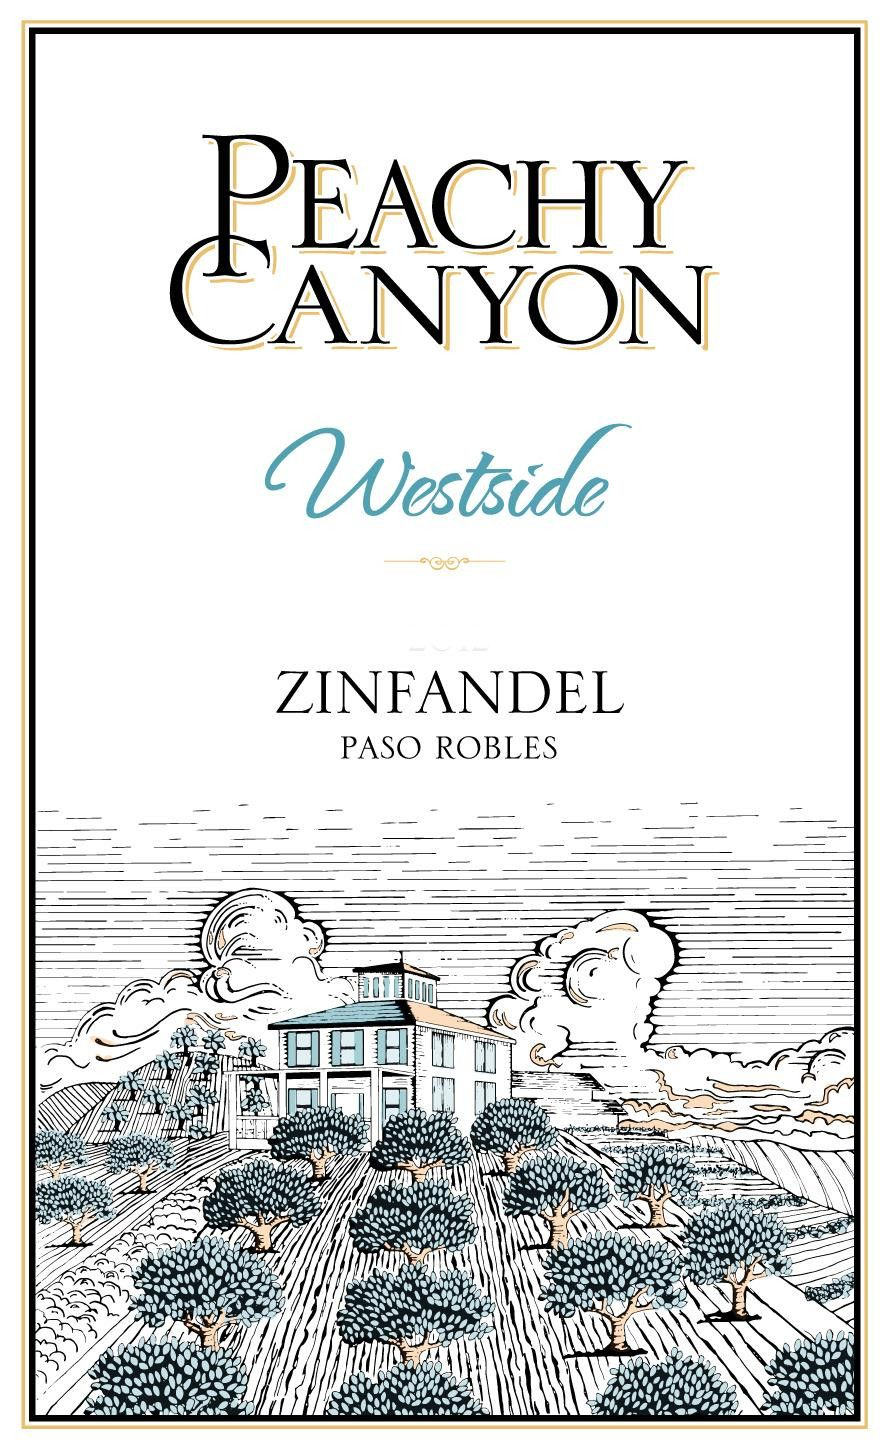 Peachy Canyon Westside Zinfandel 2016 Front Label